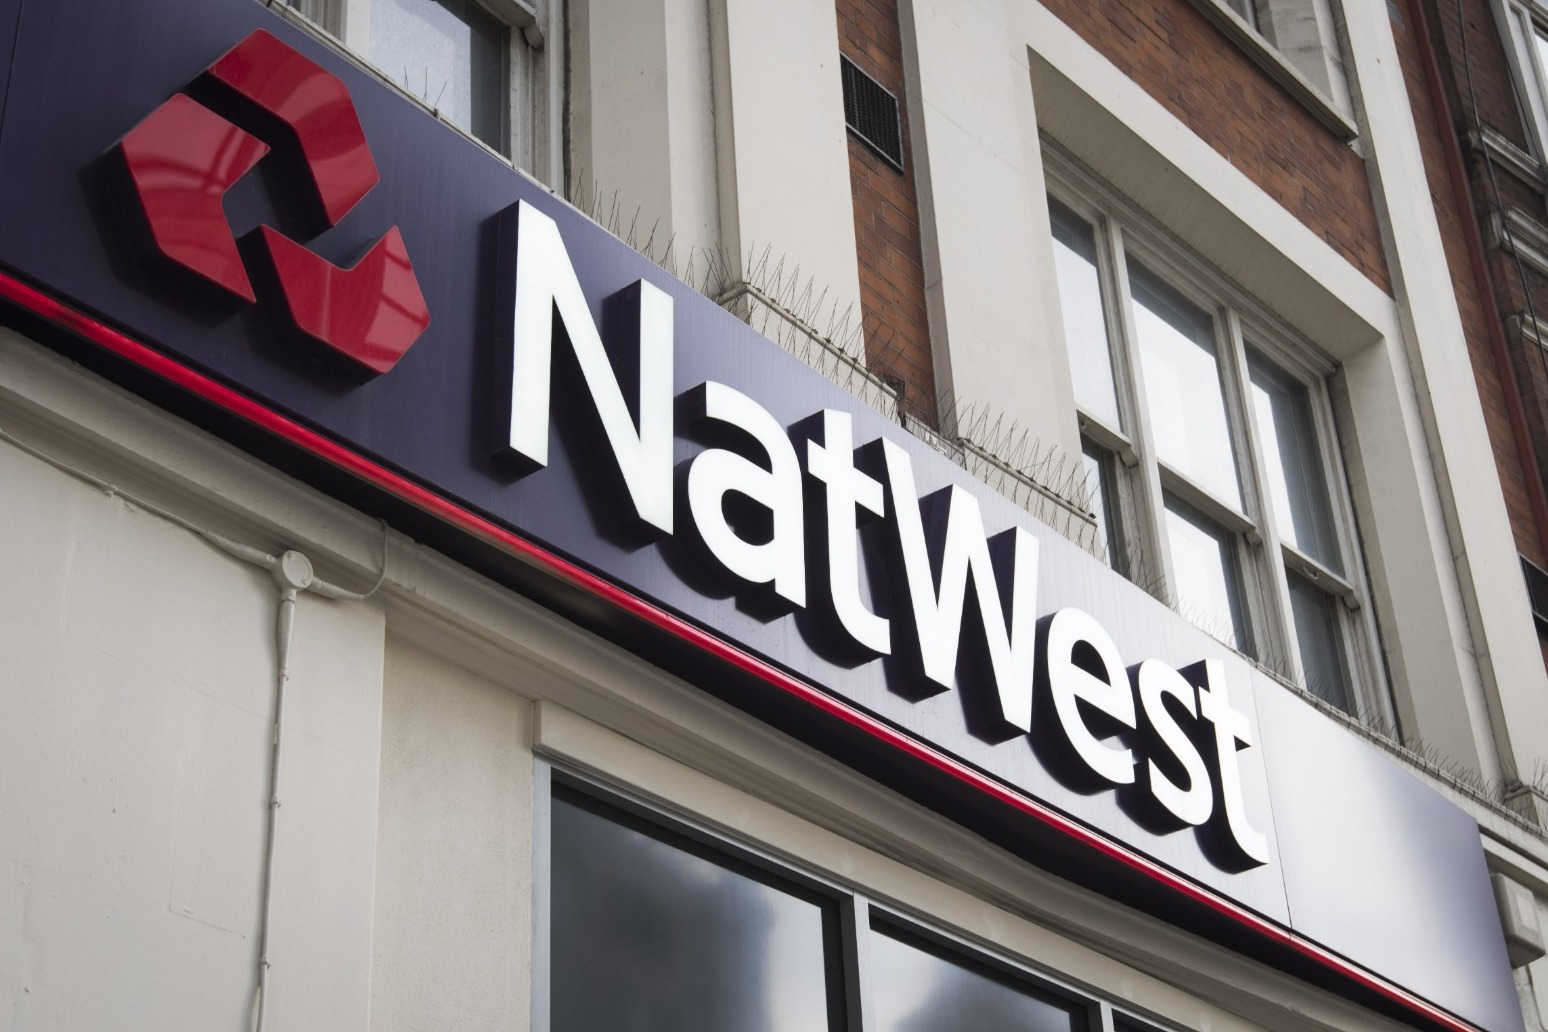 Taxpayer nets £1.1bn from NatWest Group stake sale